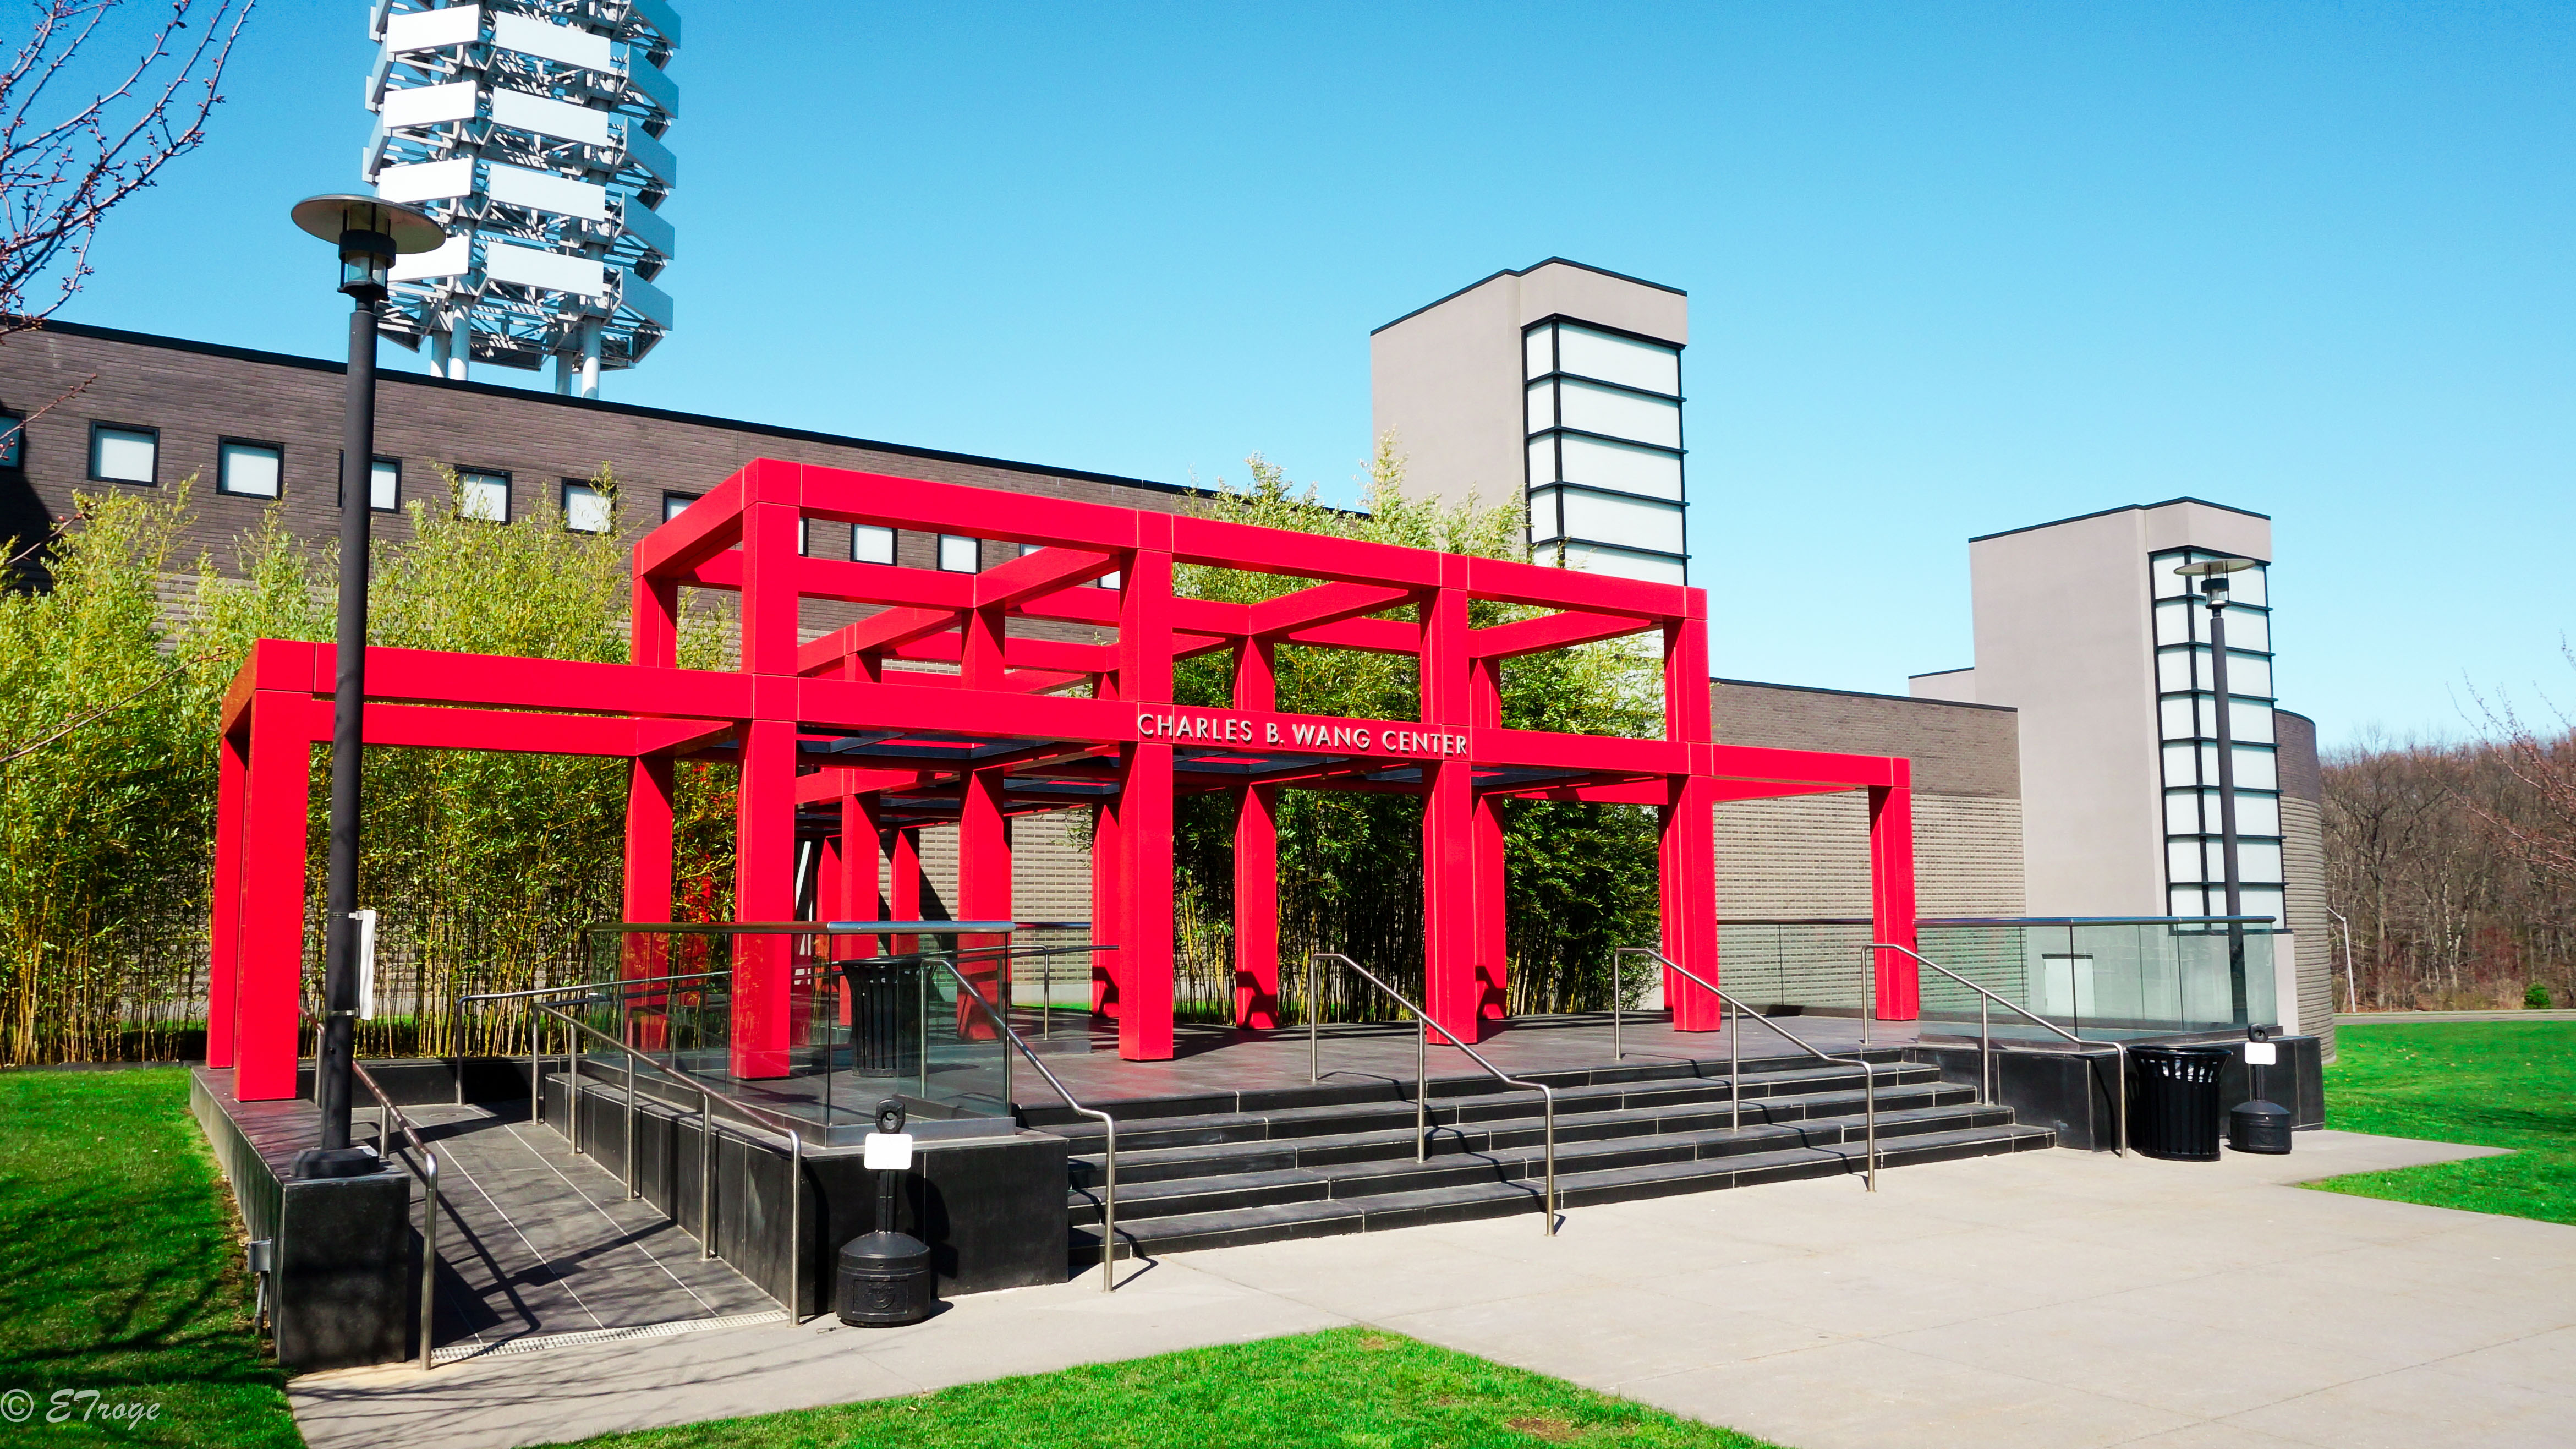 The state university of new york at stony brook-2606